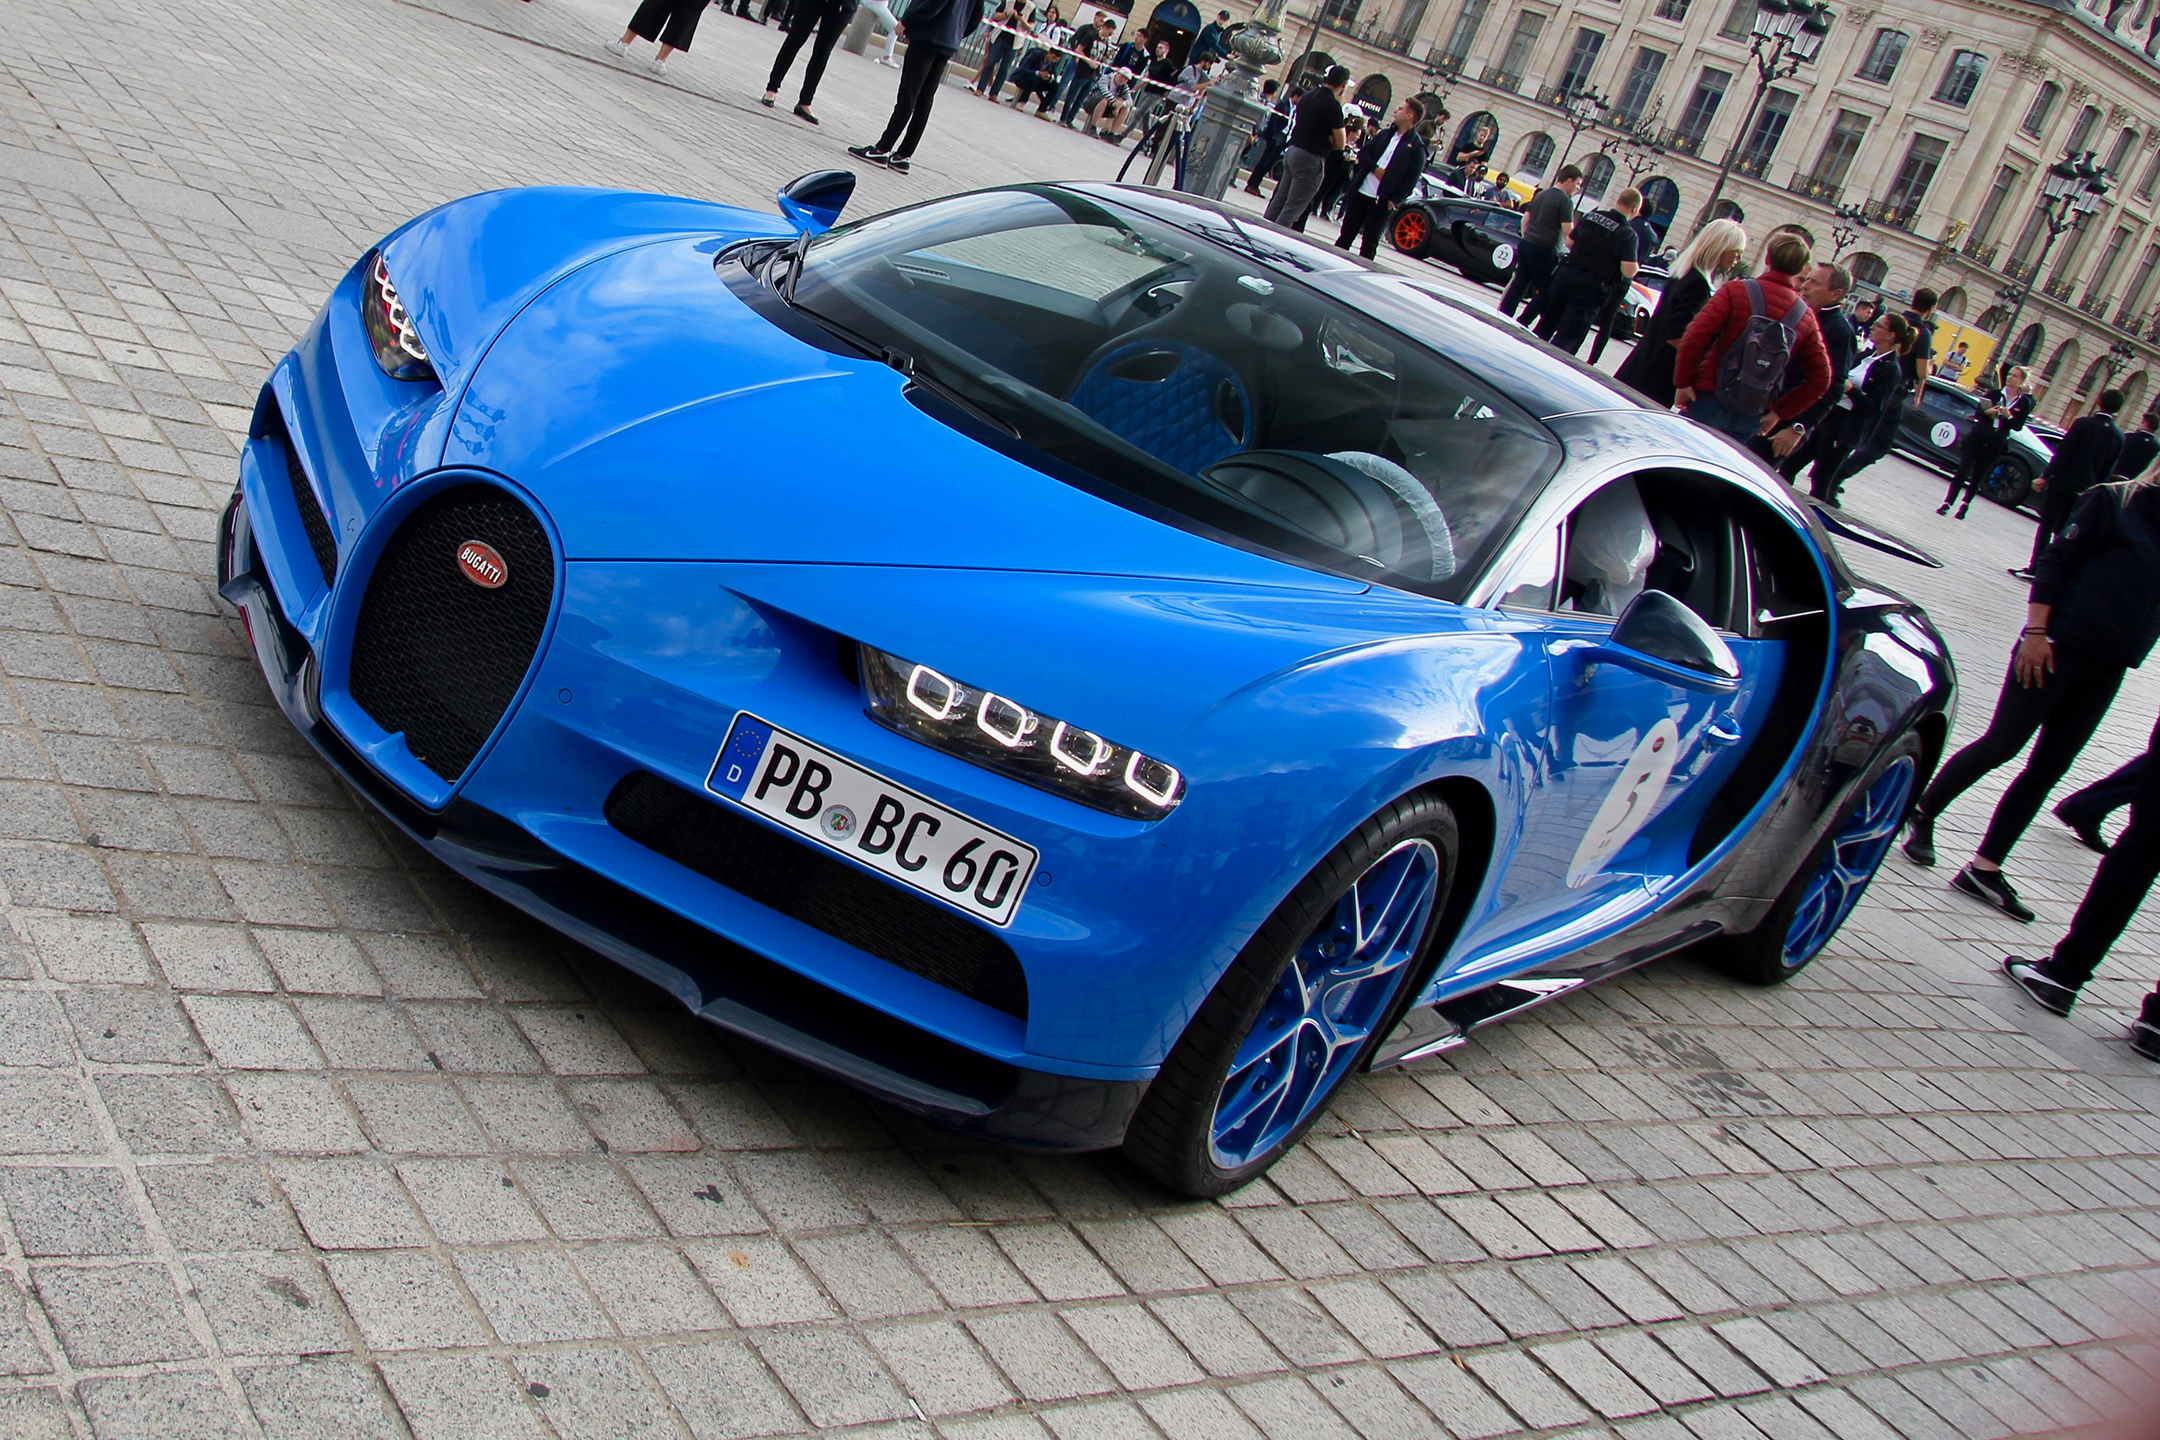 Bugatti Automobiles - bleue livery front-face - Chiron - W16 - Grand Tour 2019 - Paris - photo Ludo Ferrari